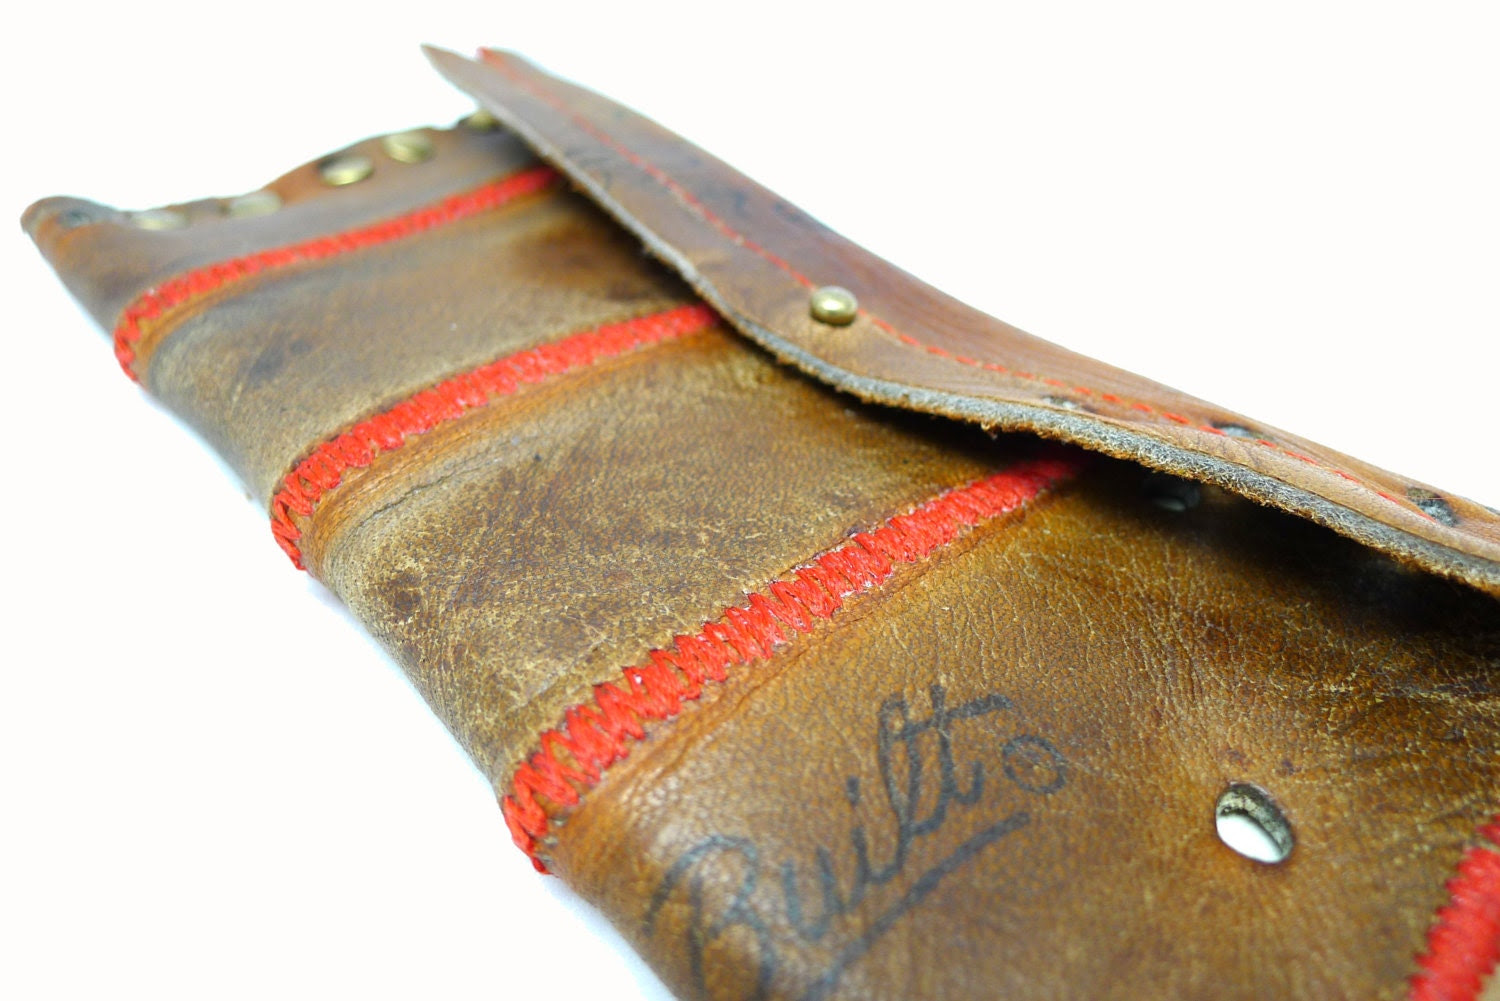 SALE! Vintage Baseball Glove Leather Wallet